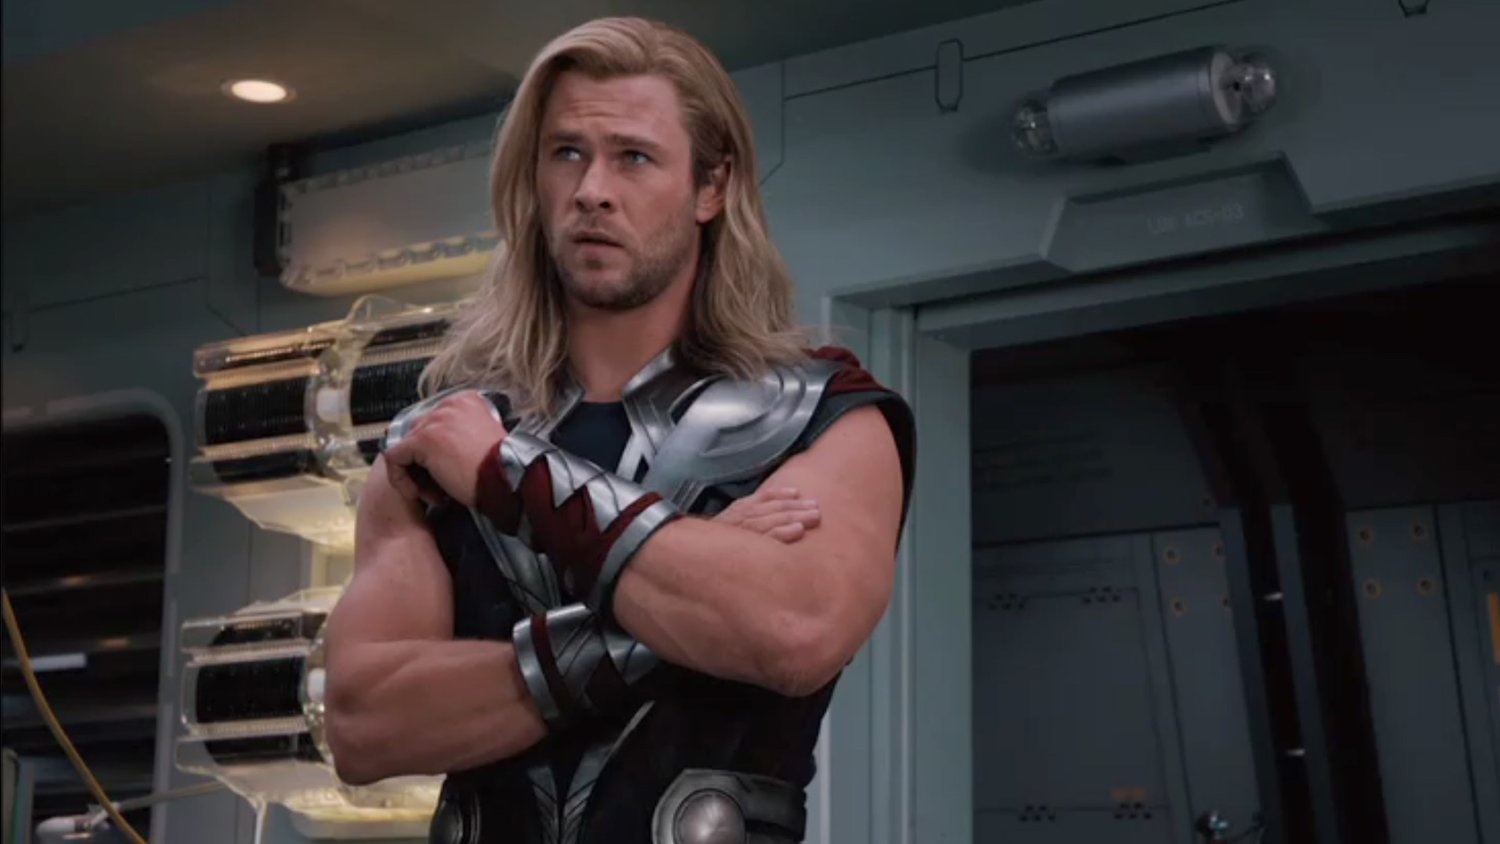 Tom Hiddleston Says THOR: RAGNAROK Will Feature the Funniest Depiction of Thor Yet